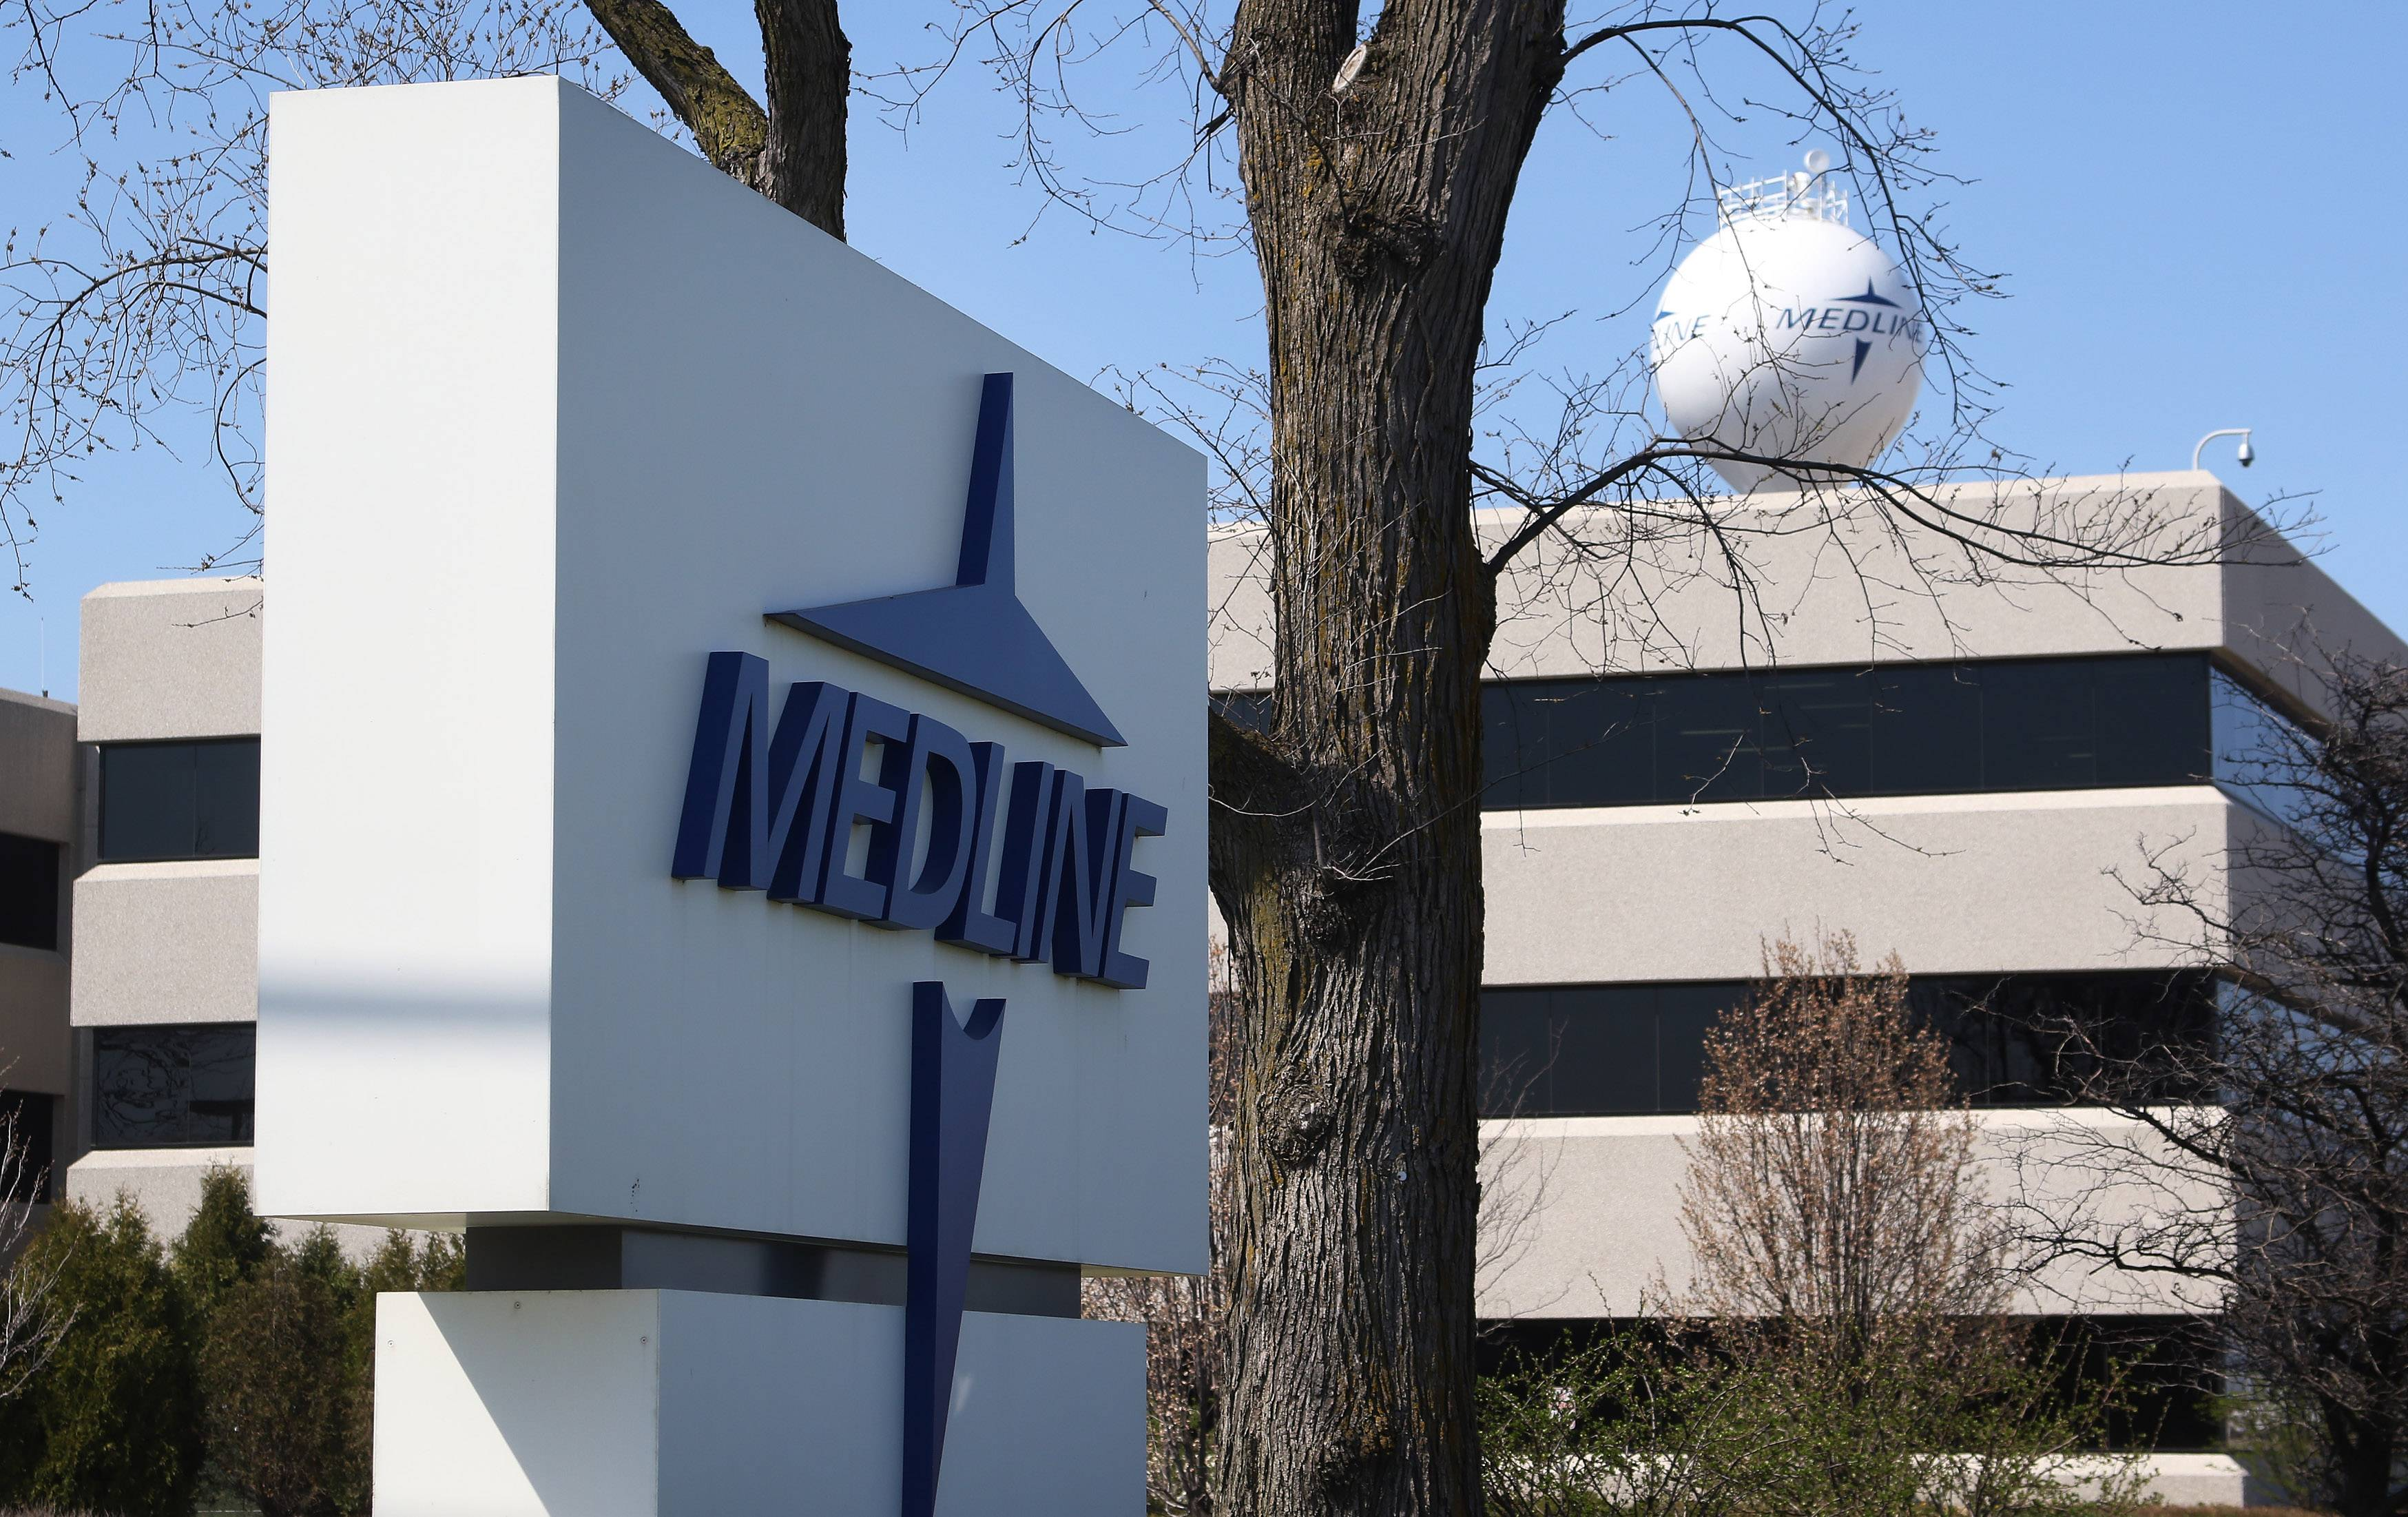 A Waukegan plant of Medline Industries, with offices in Mundelein, is one of two Lake County plants lawmakers want the EPA to investigate for cancer-causing gas emissions like those found at the Sterigenics facility in Willowbrook.